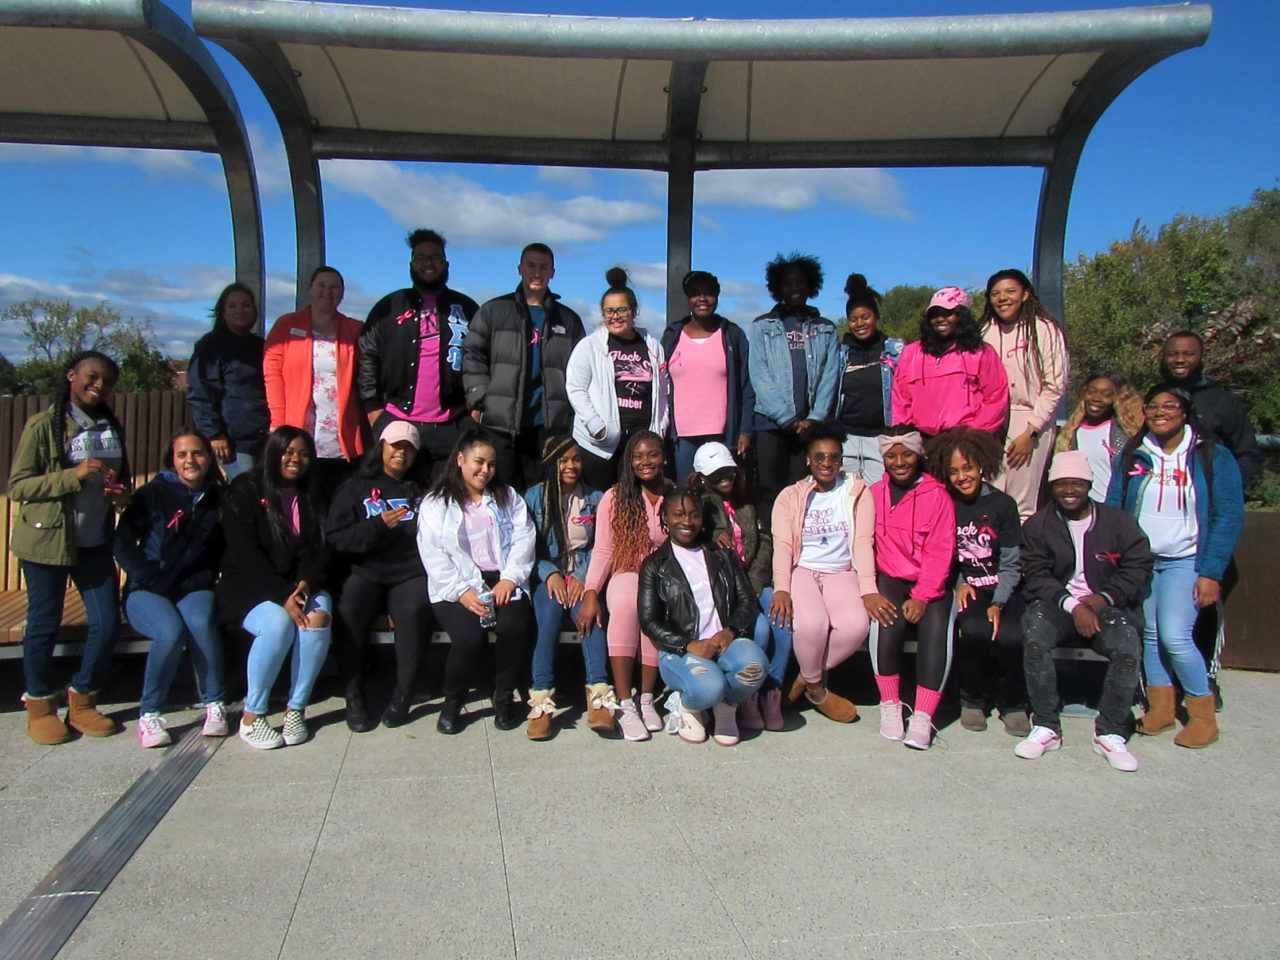 A group of students in pink clothes pose for a photo on the Metro Campus footbridge.